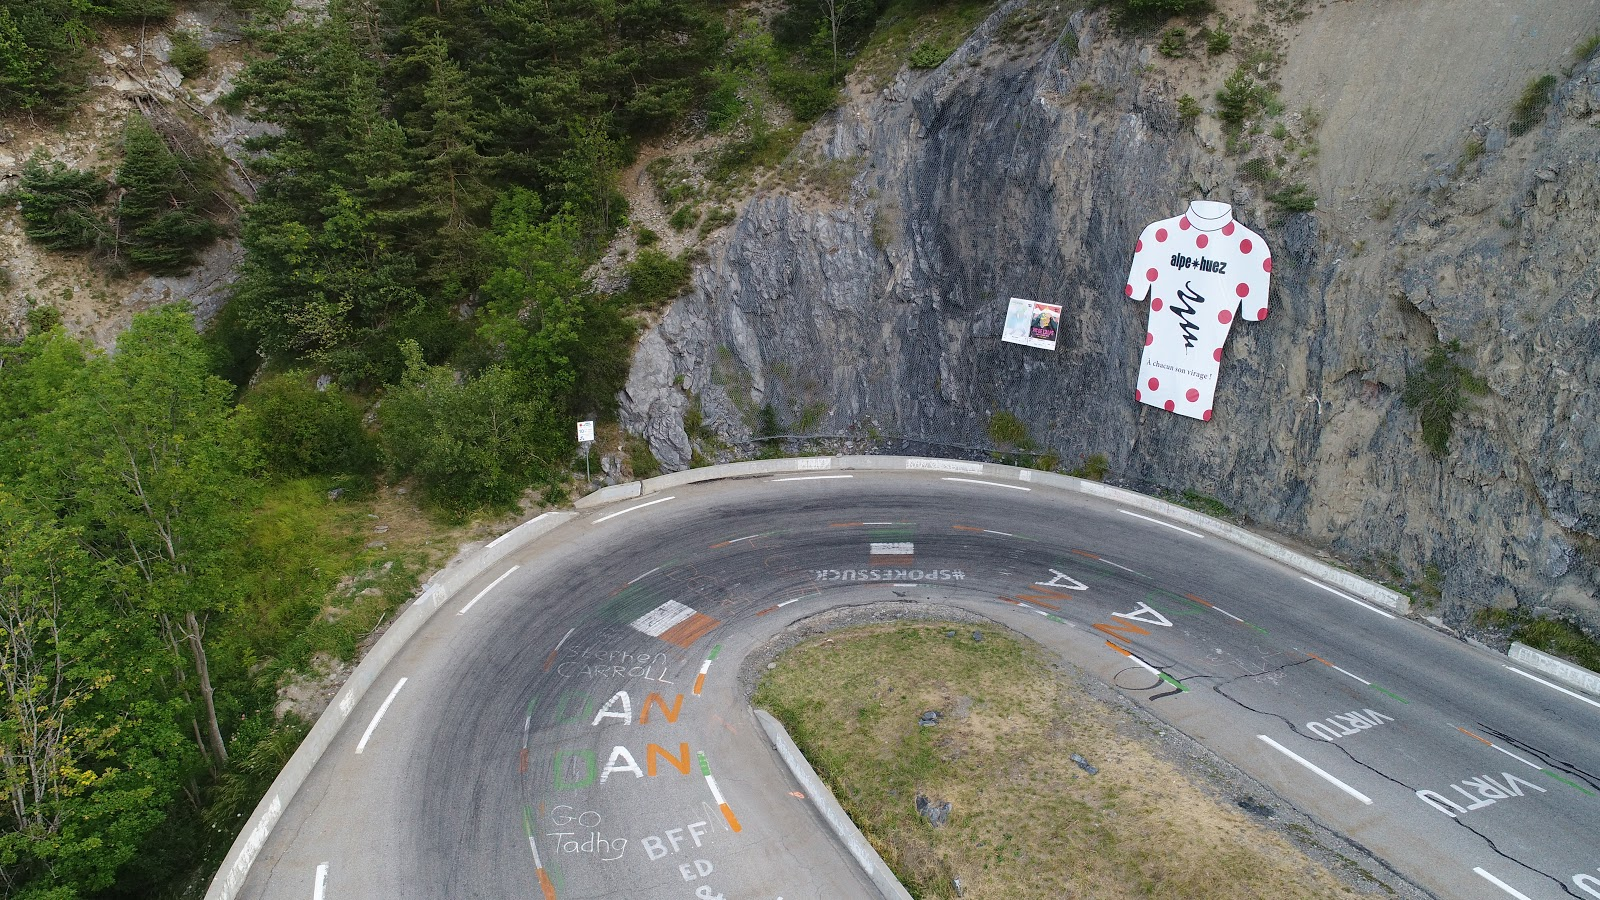 Bike climb Alpe d'Huez - turn (tornante) 10 aerial drone photo of mountain stage leader poster on wall and hairpin curve.